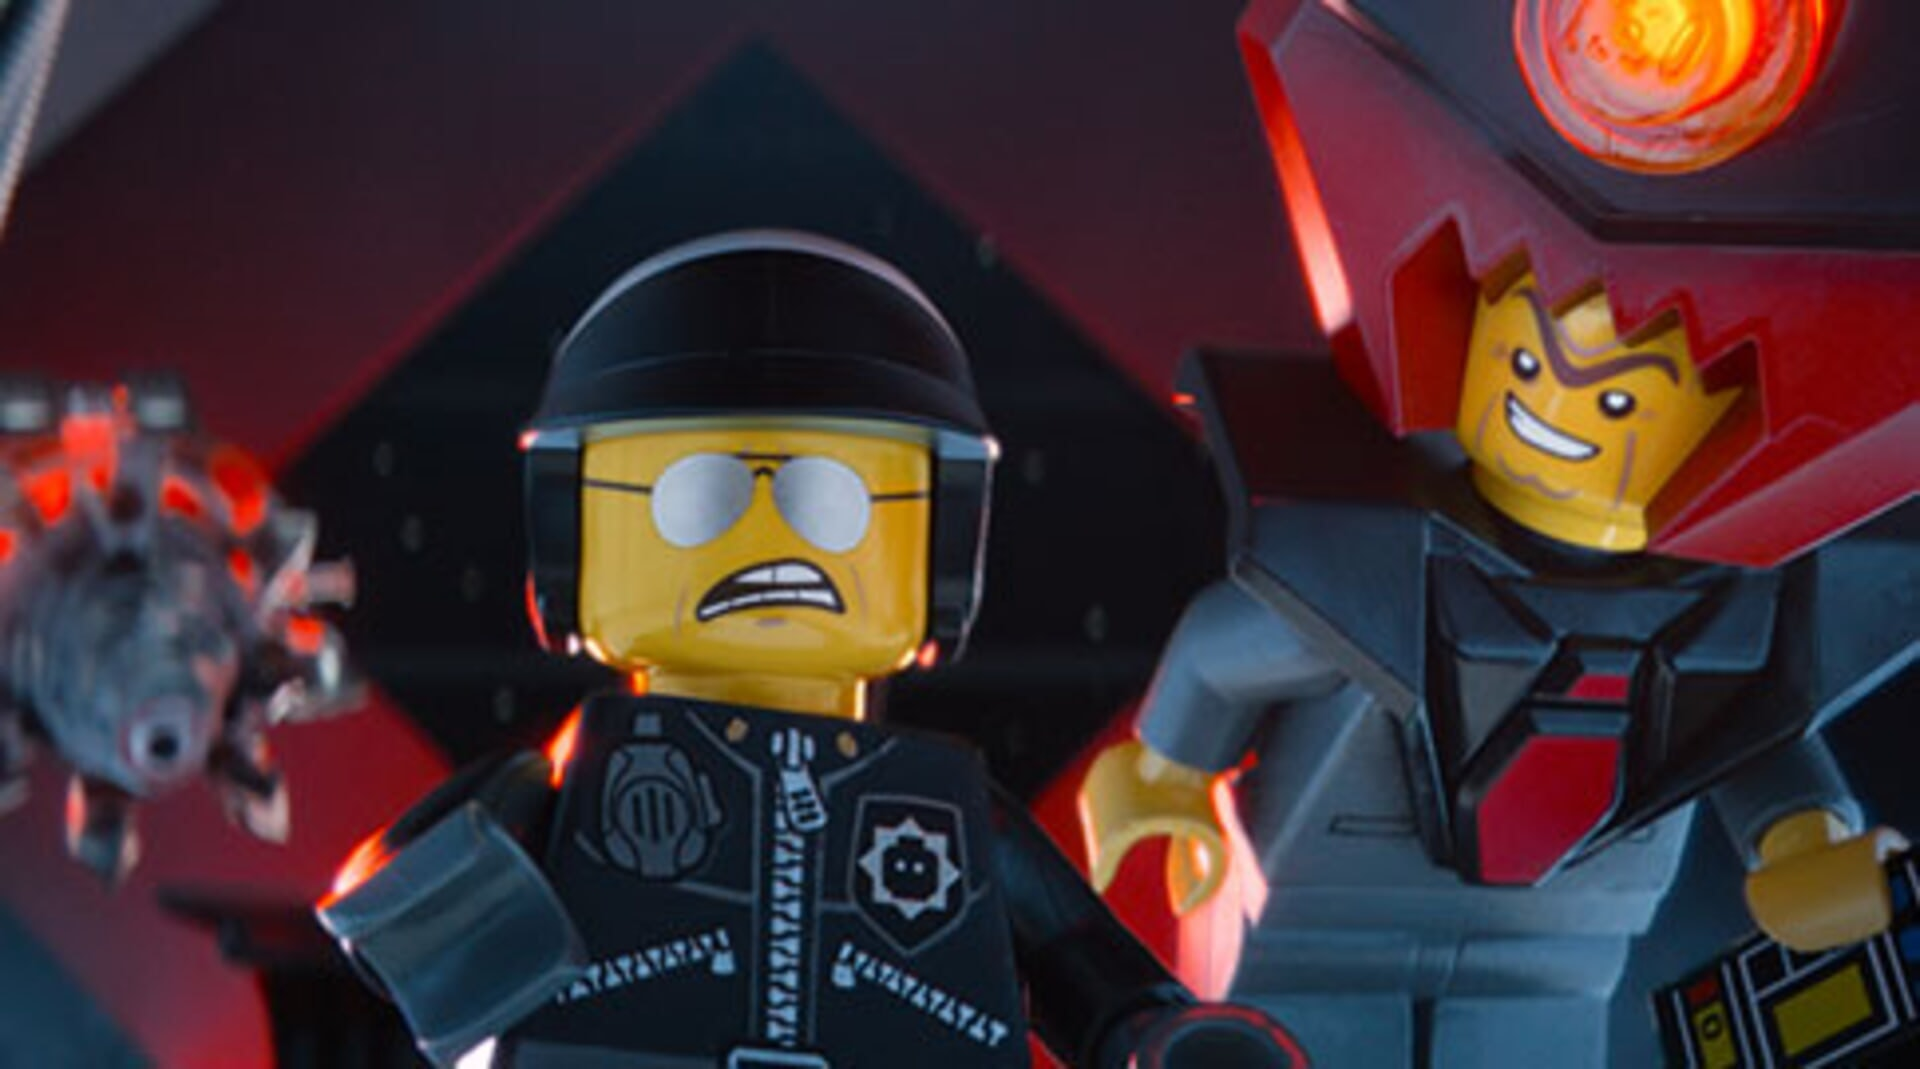 The Lego Movie - Image 12